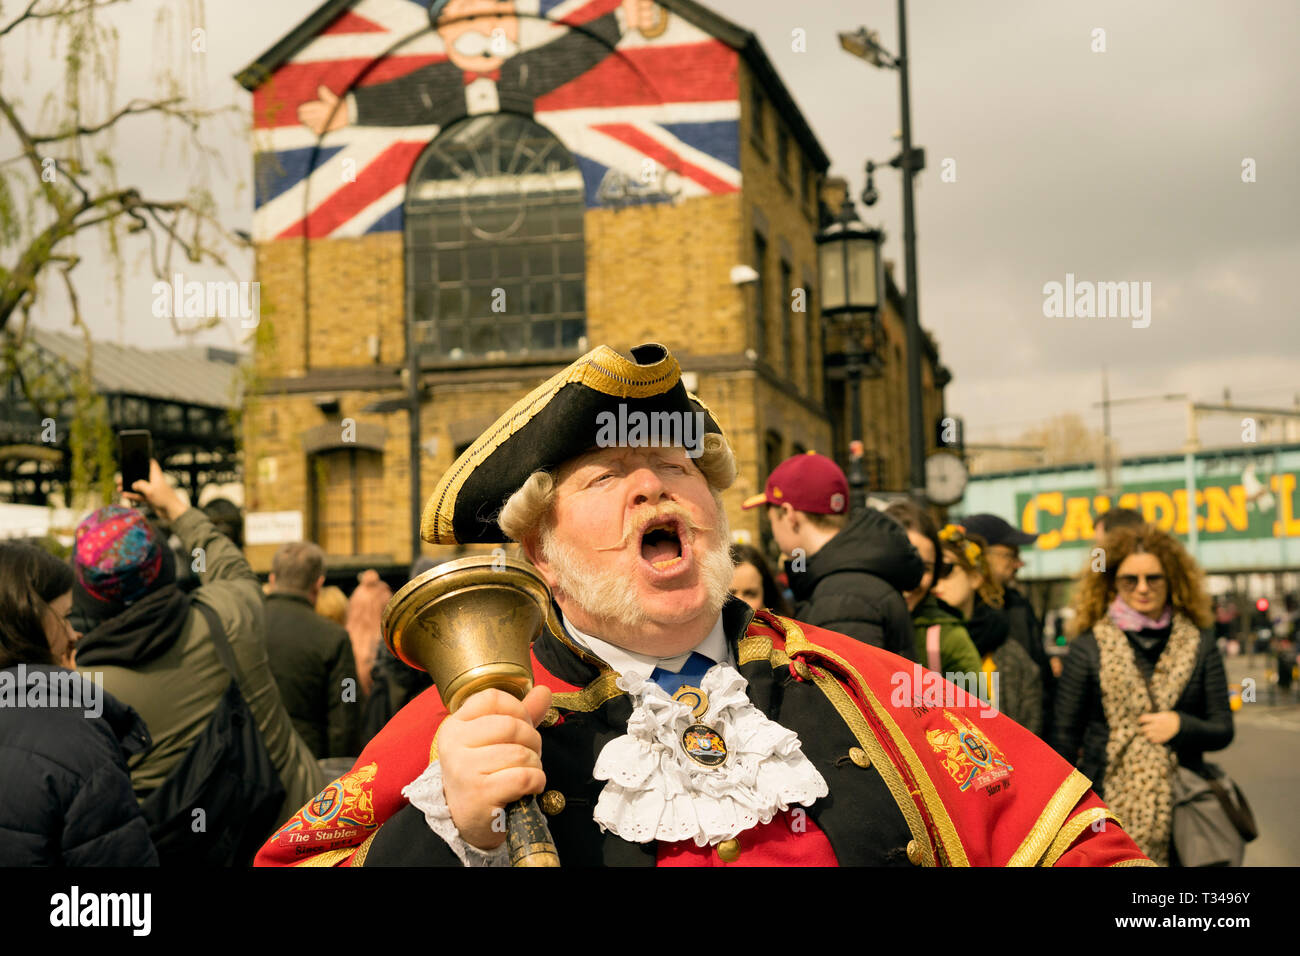 Alan Myatt 62 is a town crier who set two Guinness World Records. As well as being the loudest crier, Alan is also the official town crier for the Cit - Stock Image